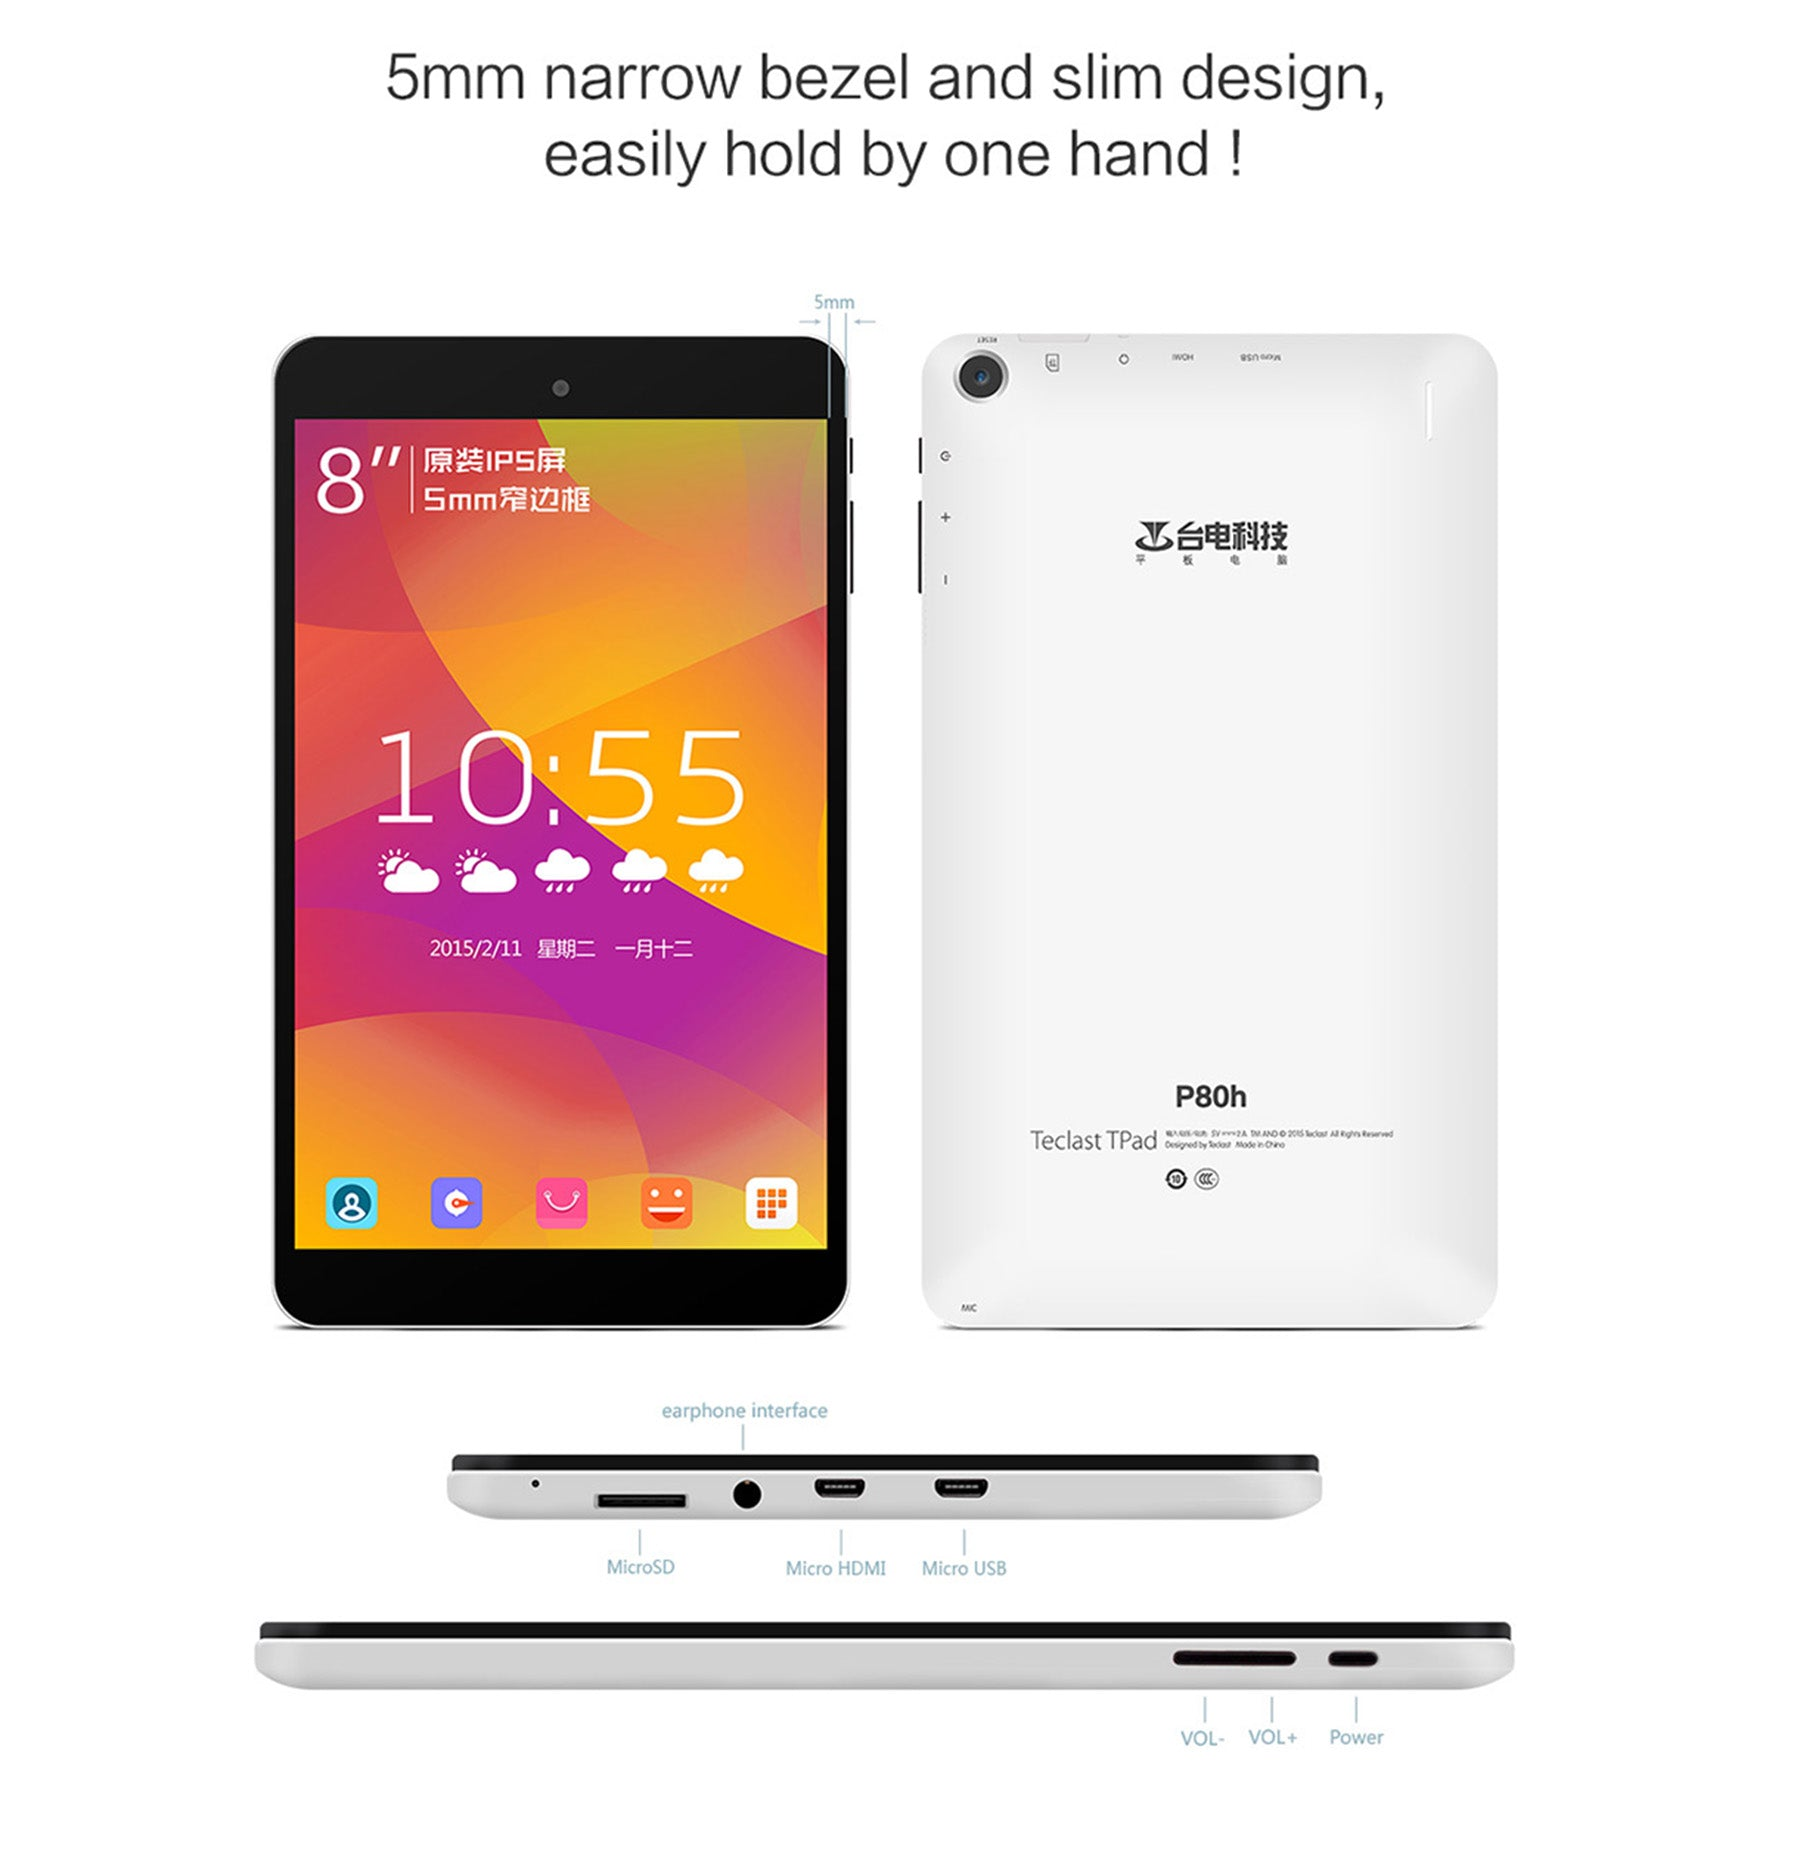 Teclast P80h 8GB MT8163 Quad Core 1.3GHz 8 Inch Android 5.1 Tablet